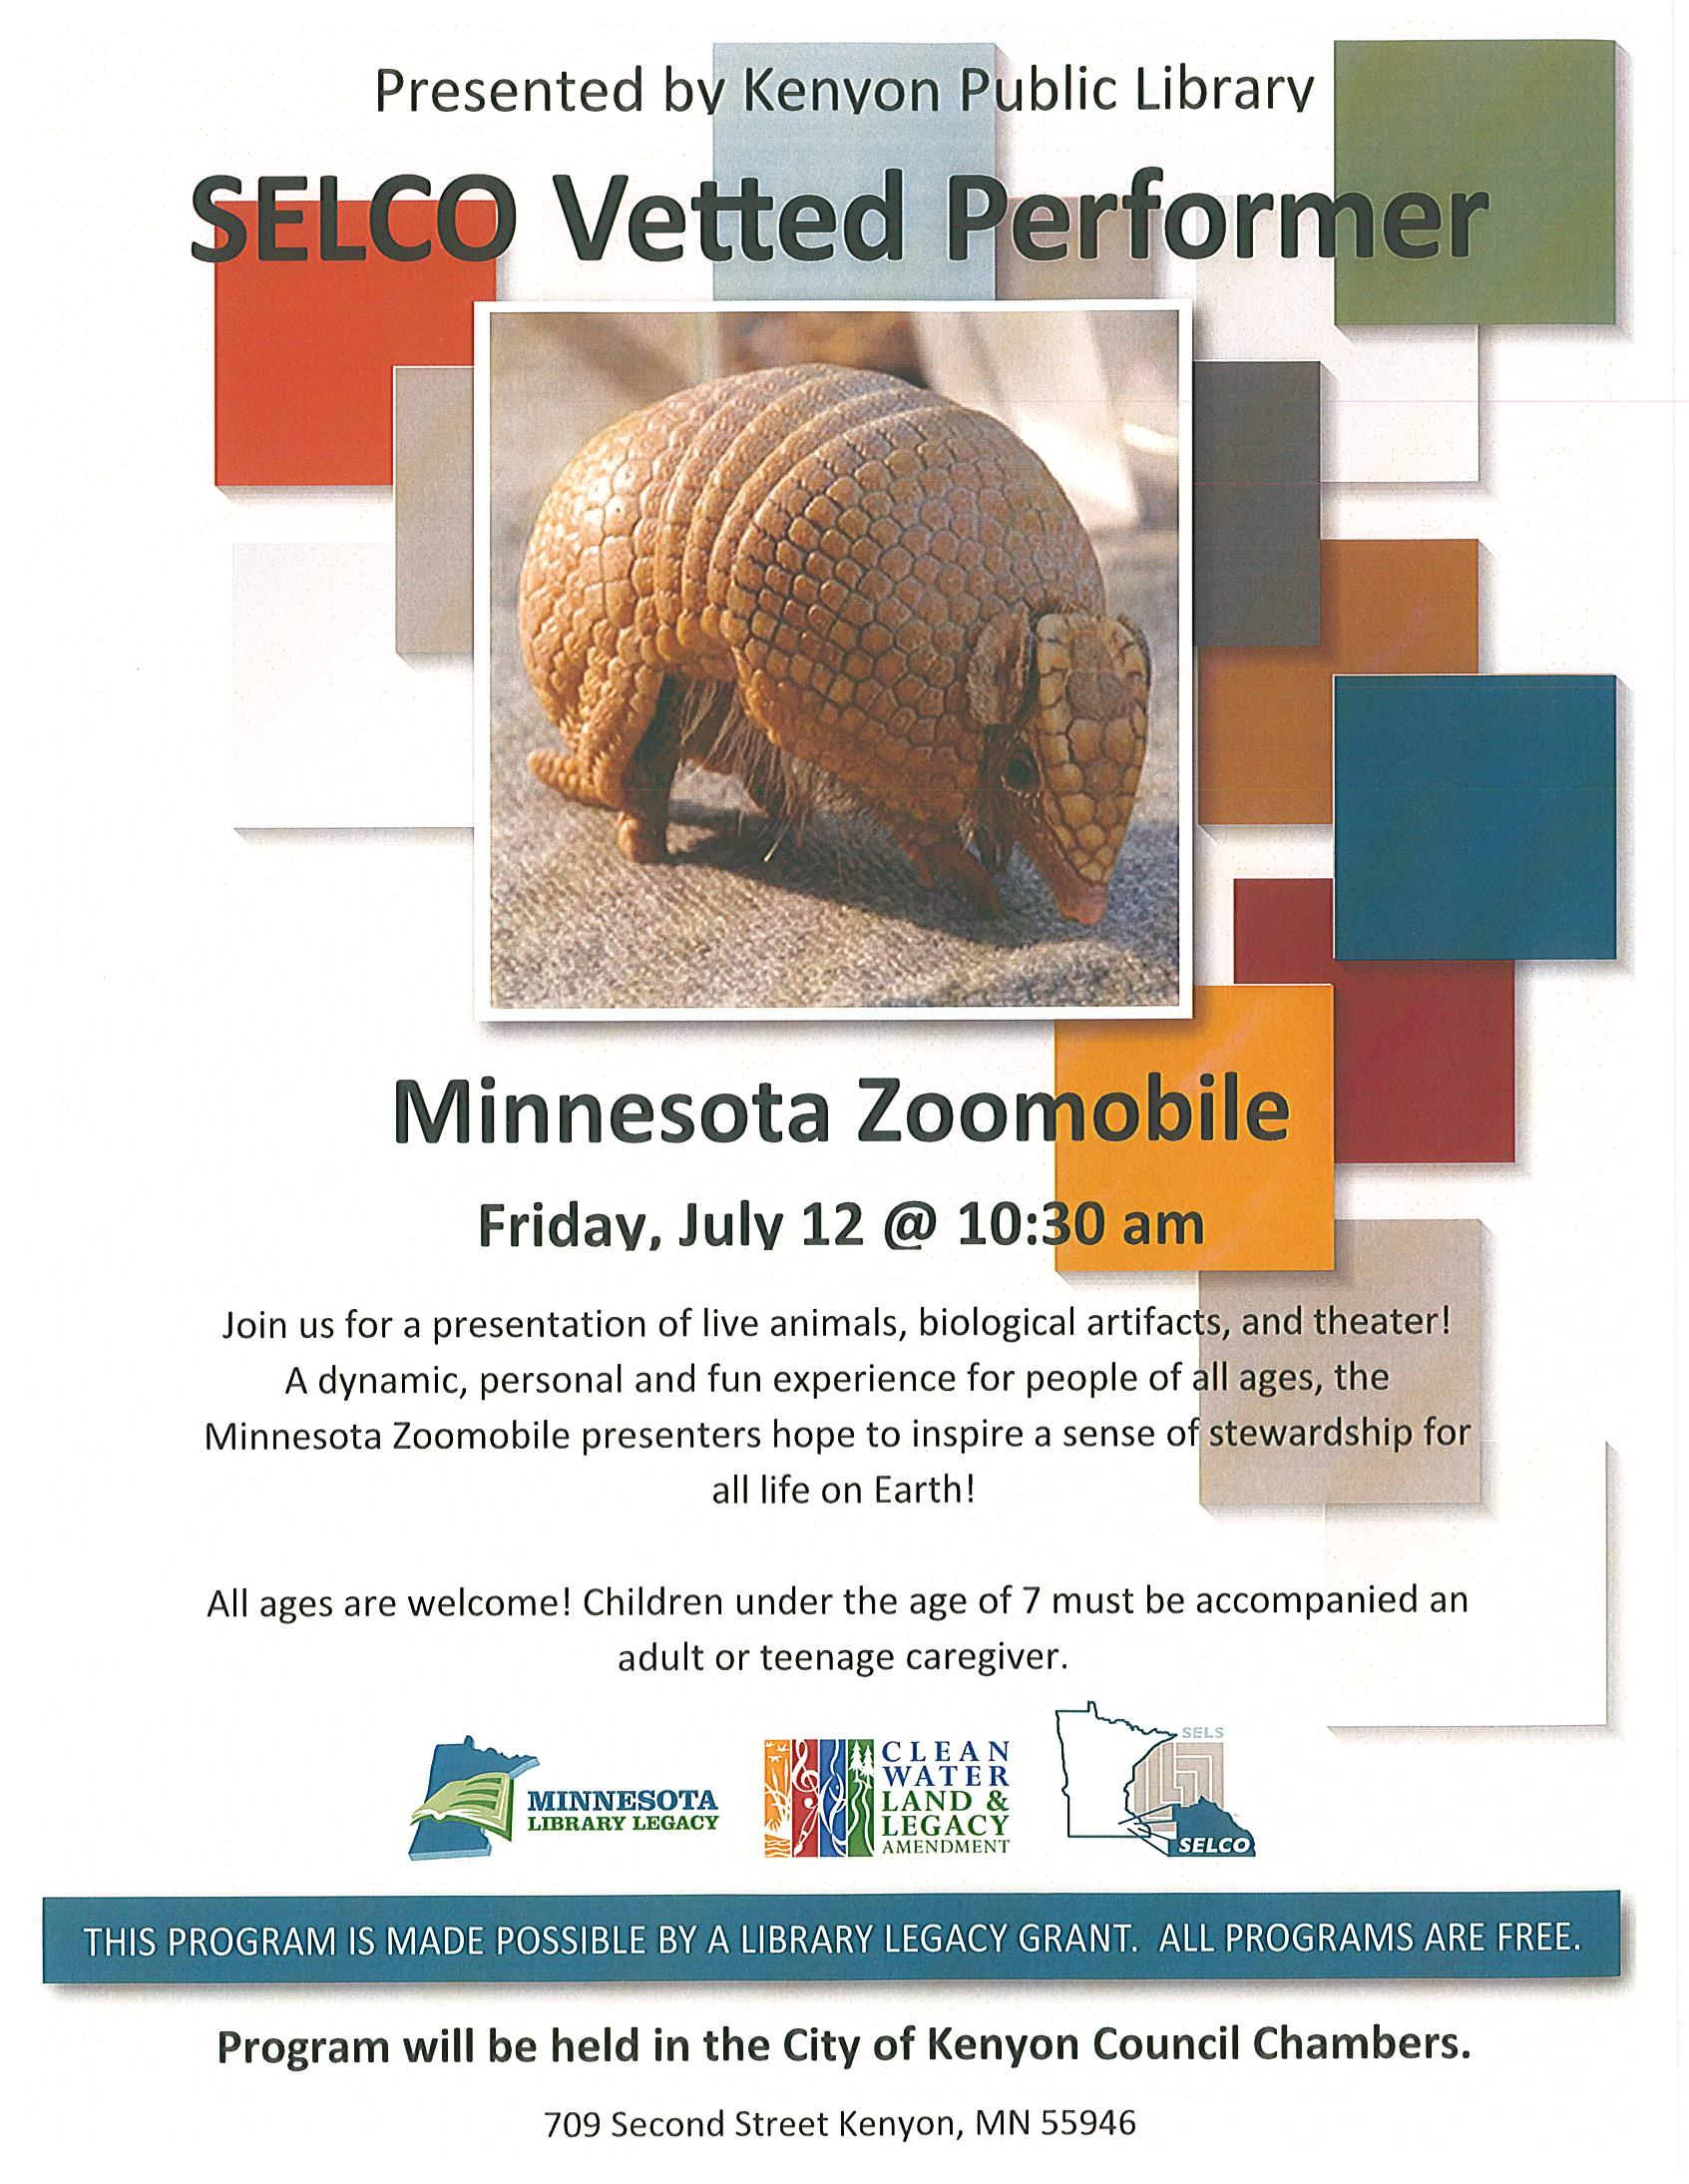 Minnesota Zoomobile July 12 @ 10:30 am